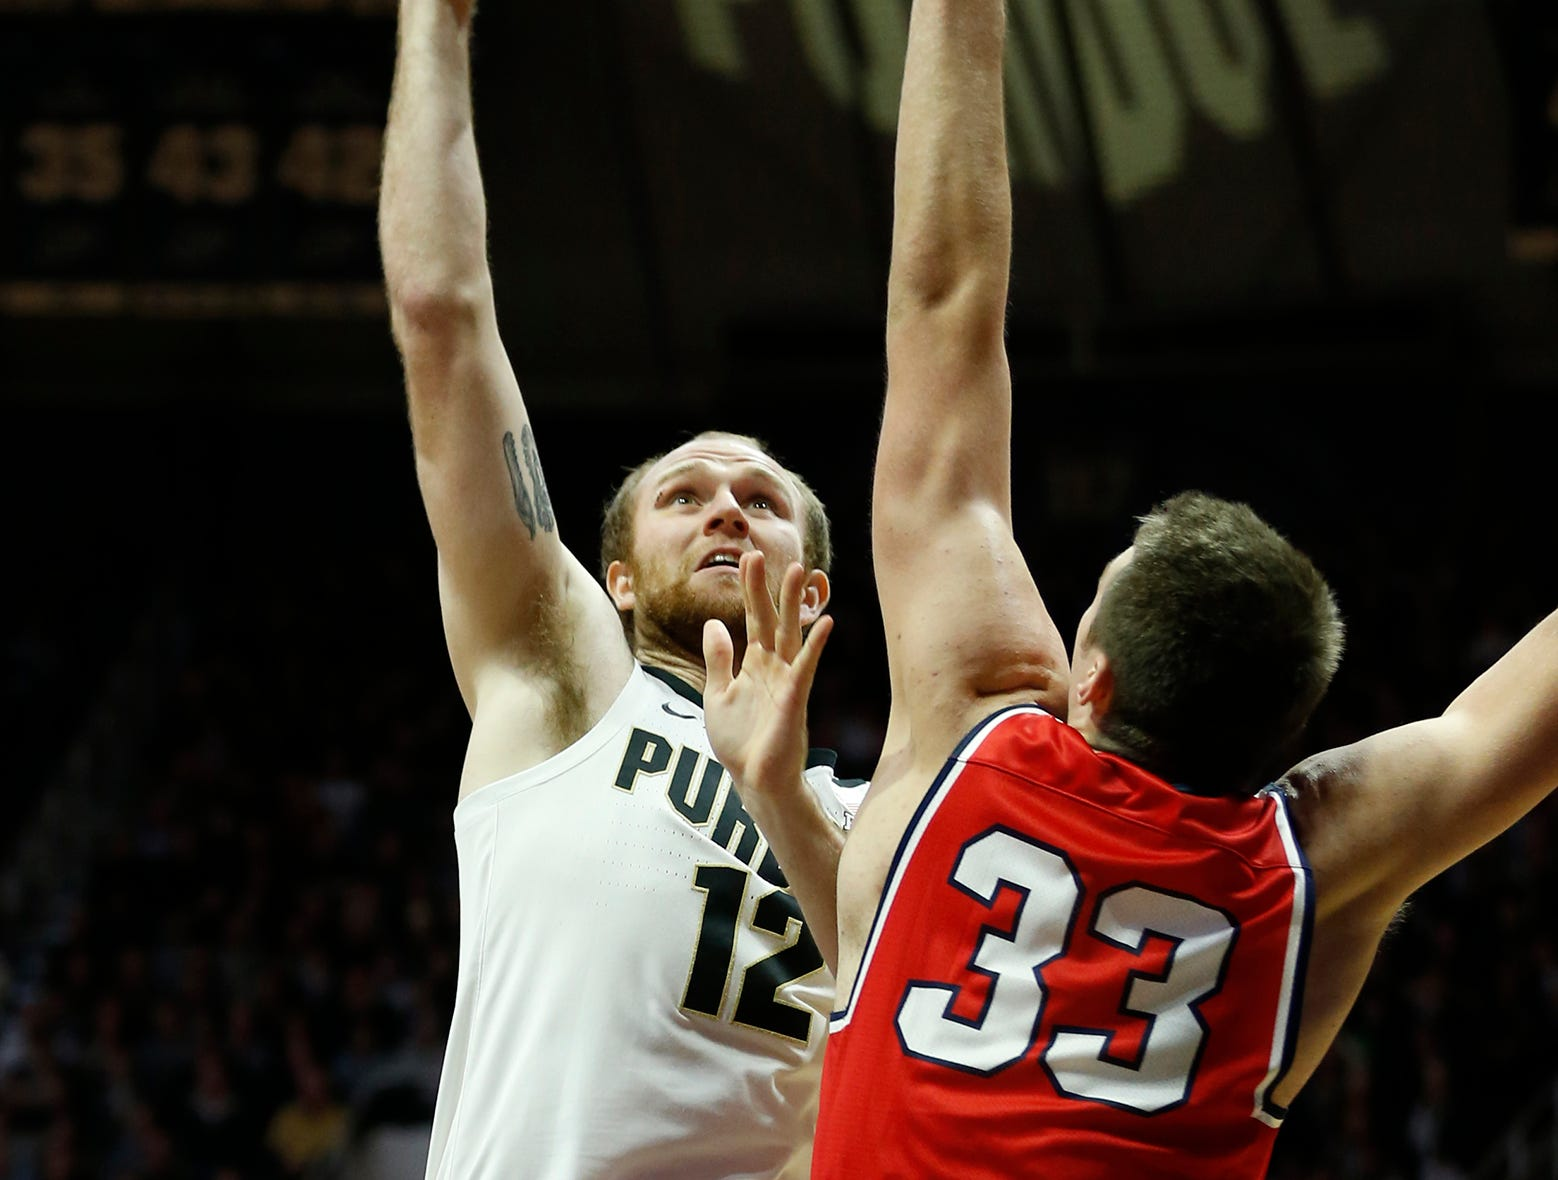 Evan Boudreaux of Purdue with a shot over Nick Muszynski of Belmont Saturday, December 29, 2018, at Mackey Arena. Purdue defeated Belmont 73-62.